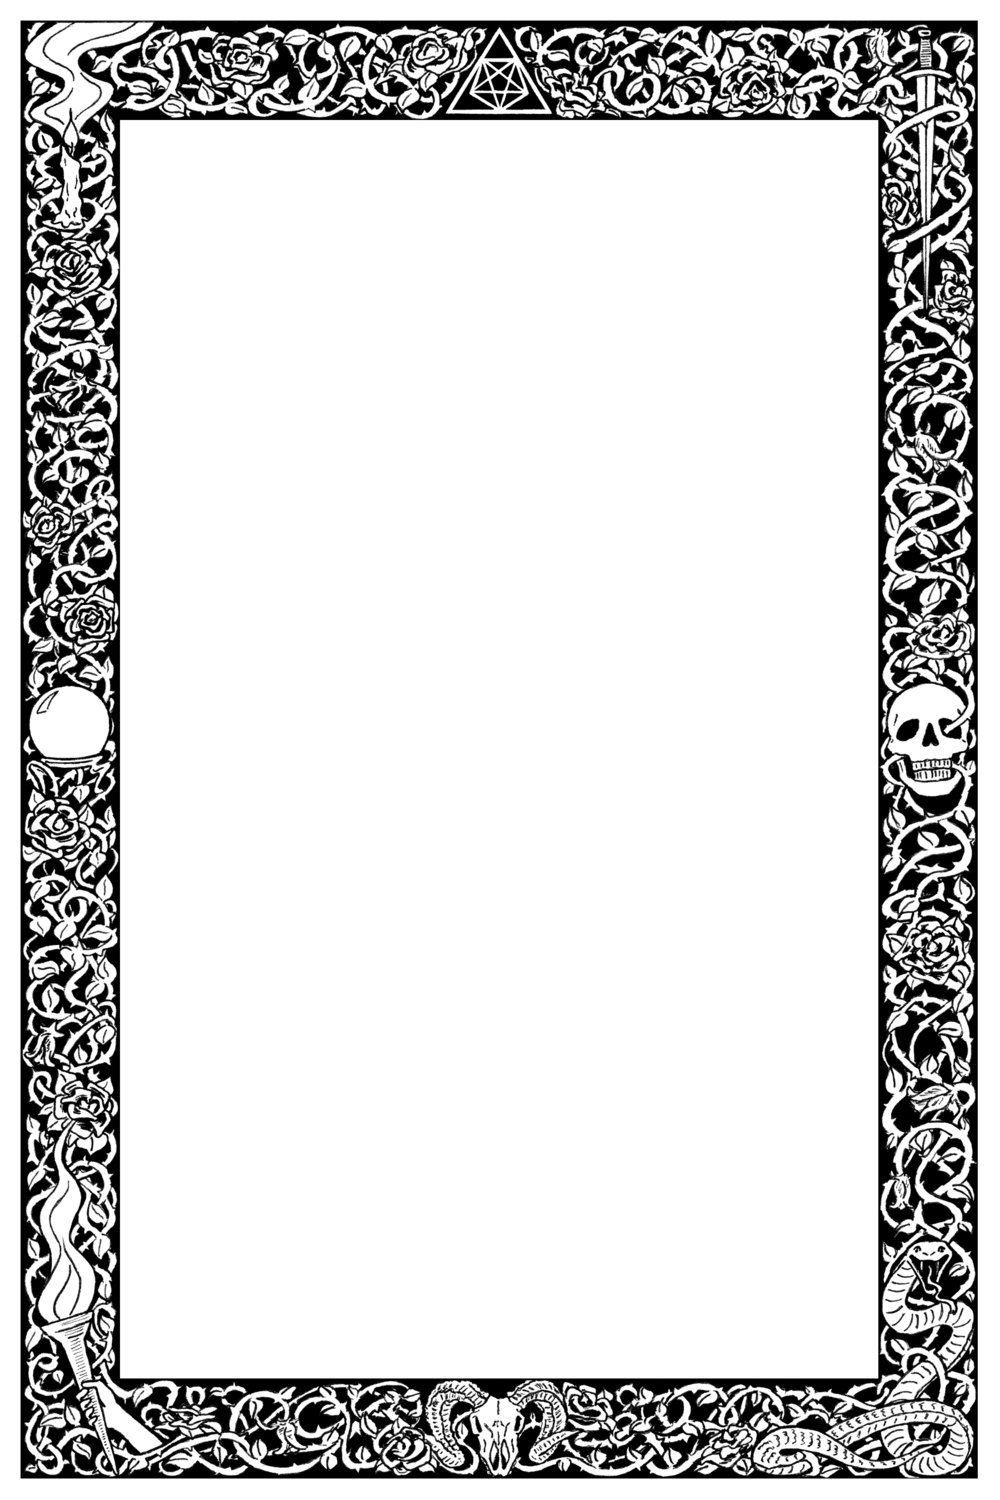 Gothic Book Border. Copyright owned by client and granted for personal promotional use by client to Alison Schofield llustration